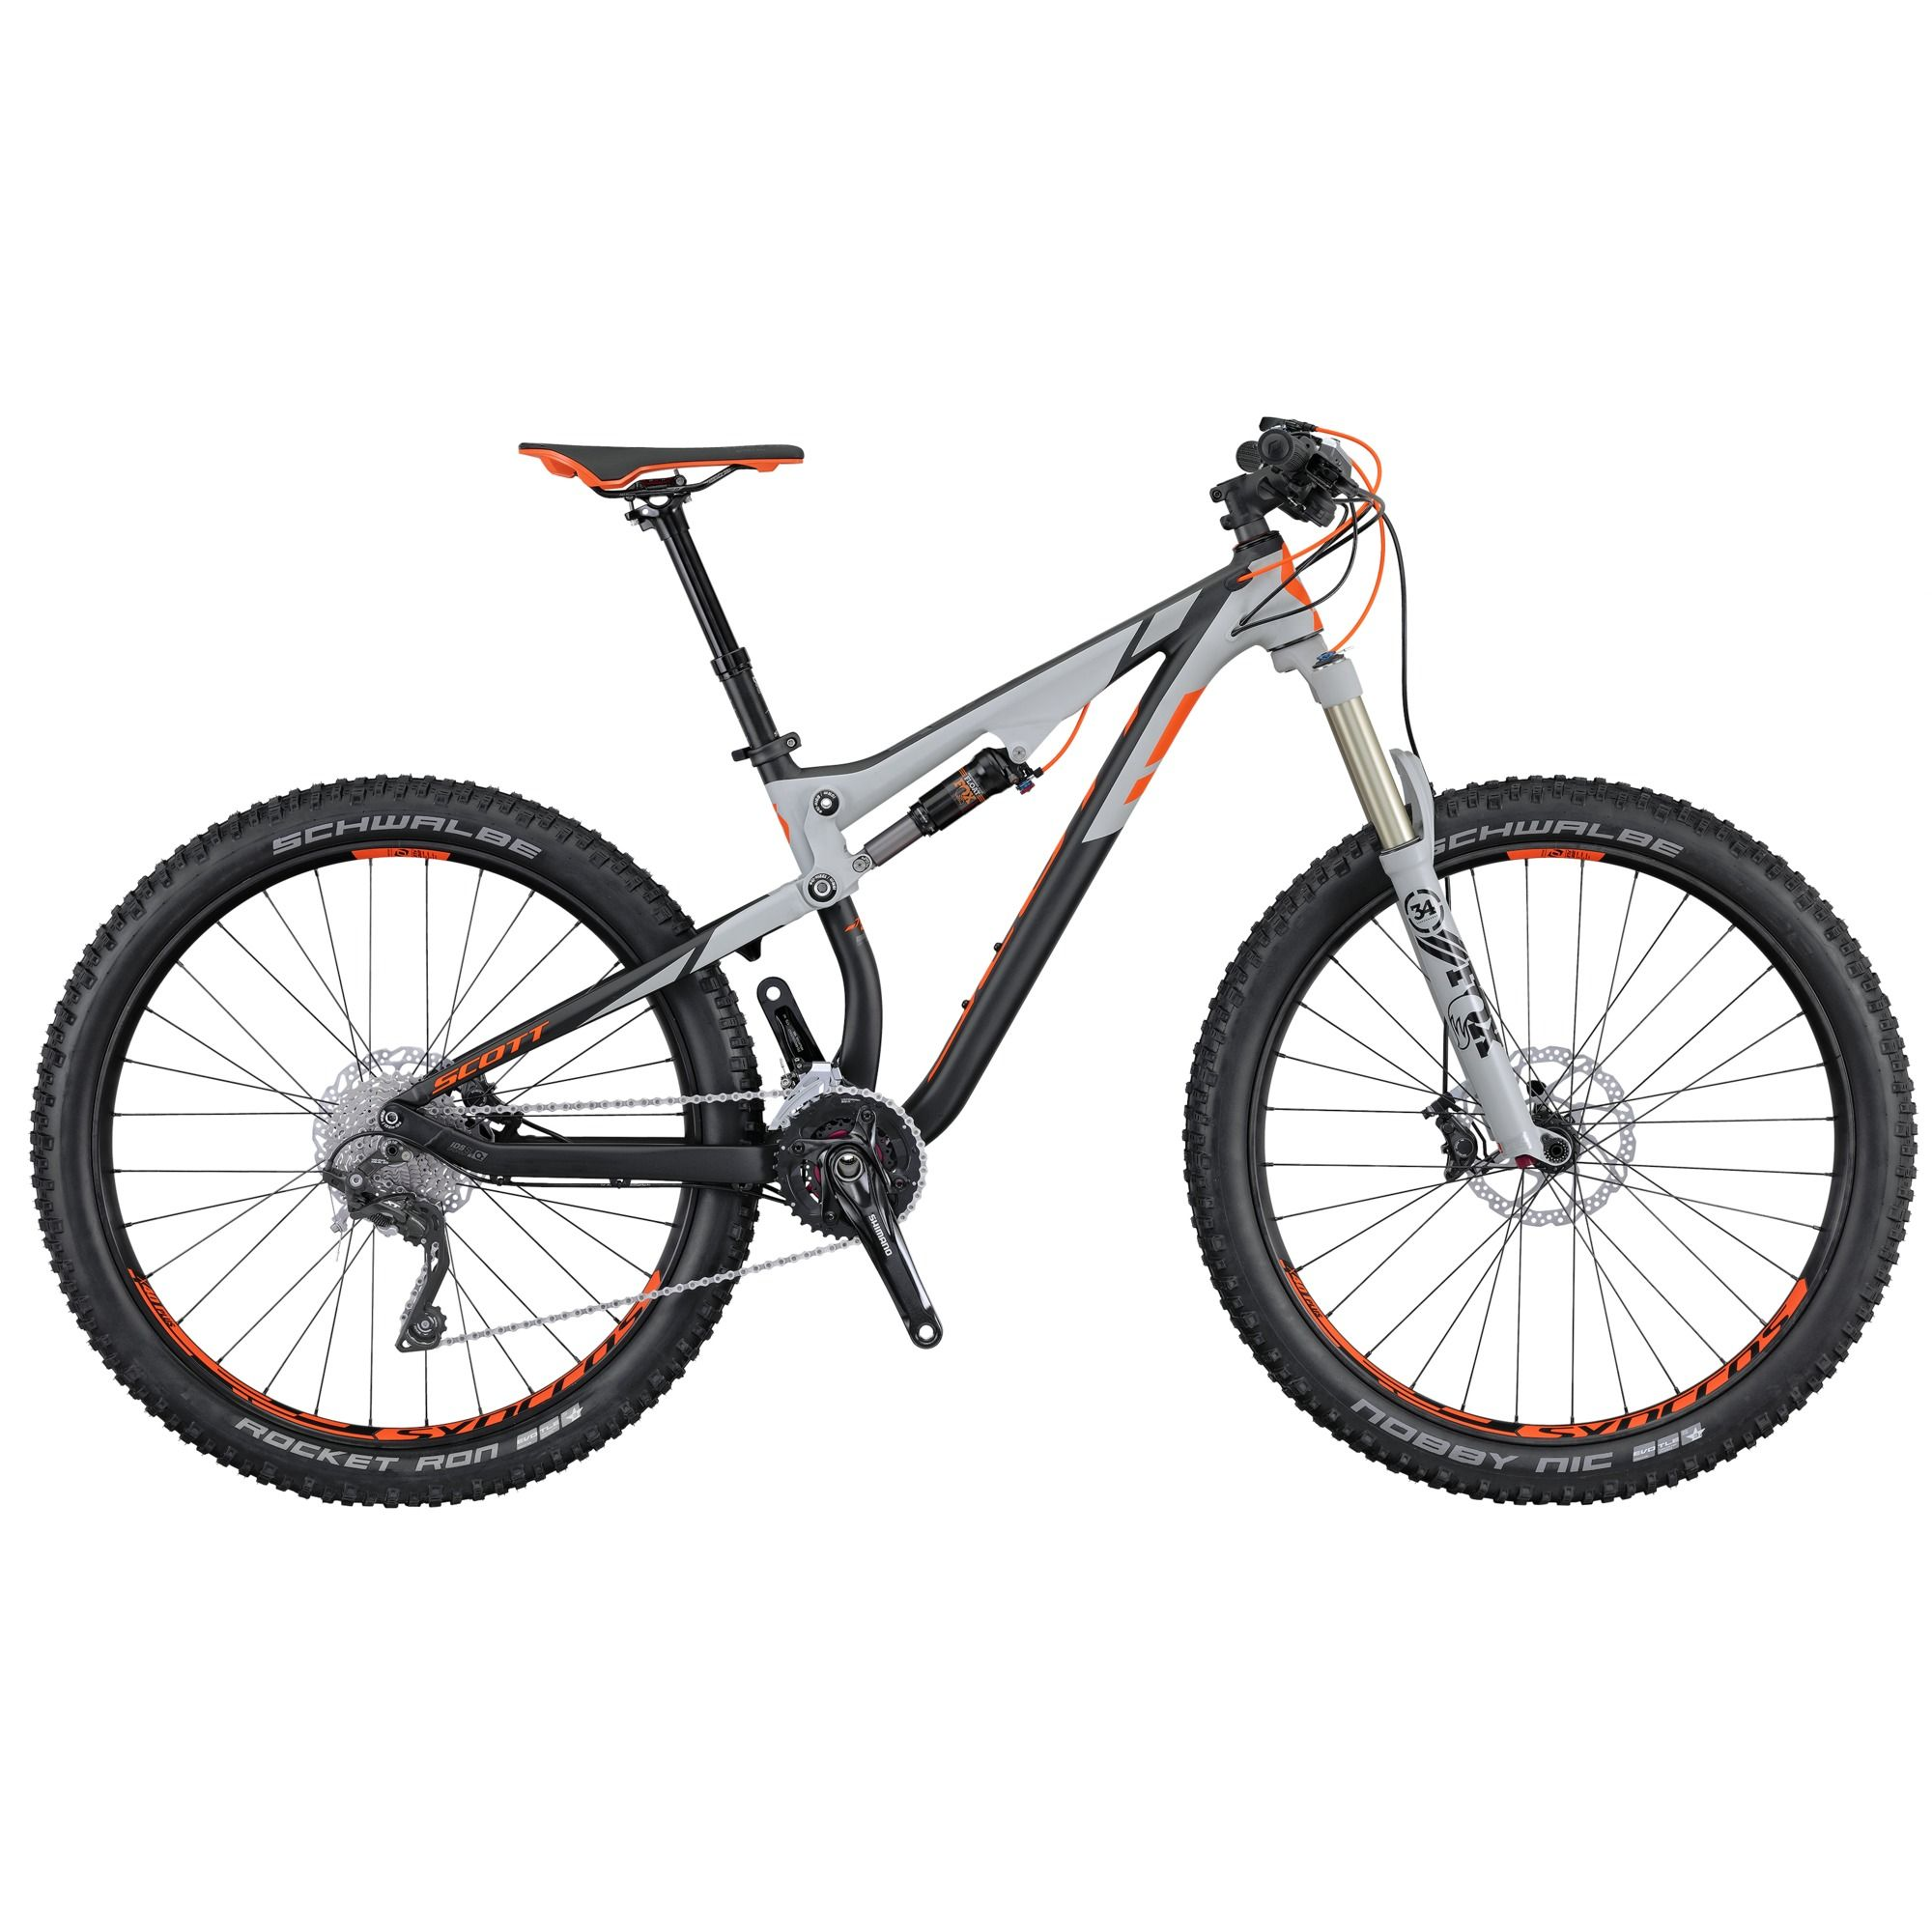 scott sports - scott genius 720 plus bike | gear i like